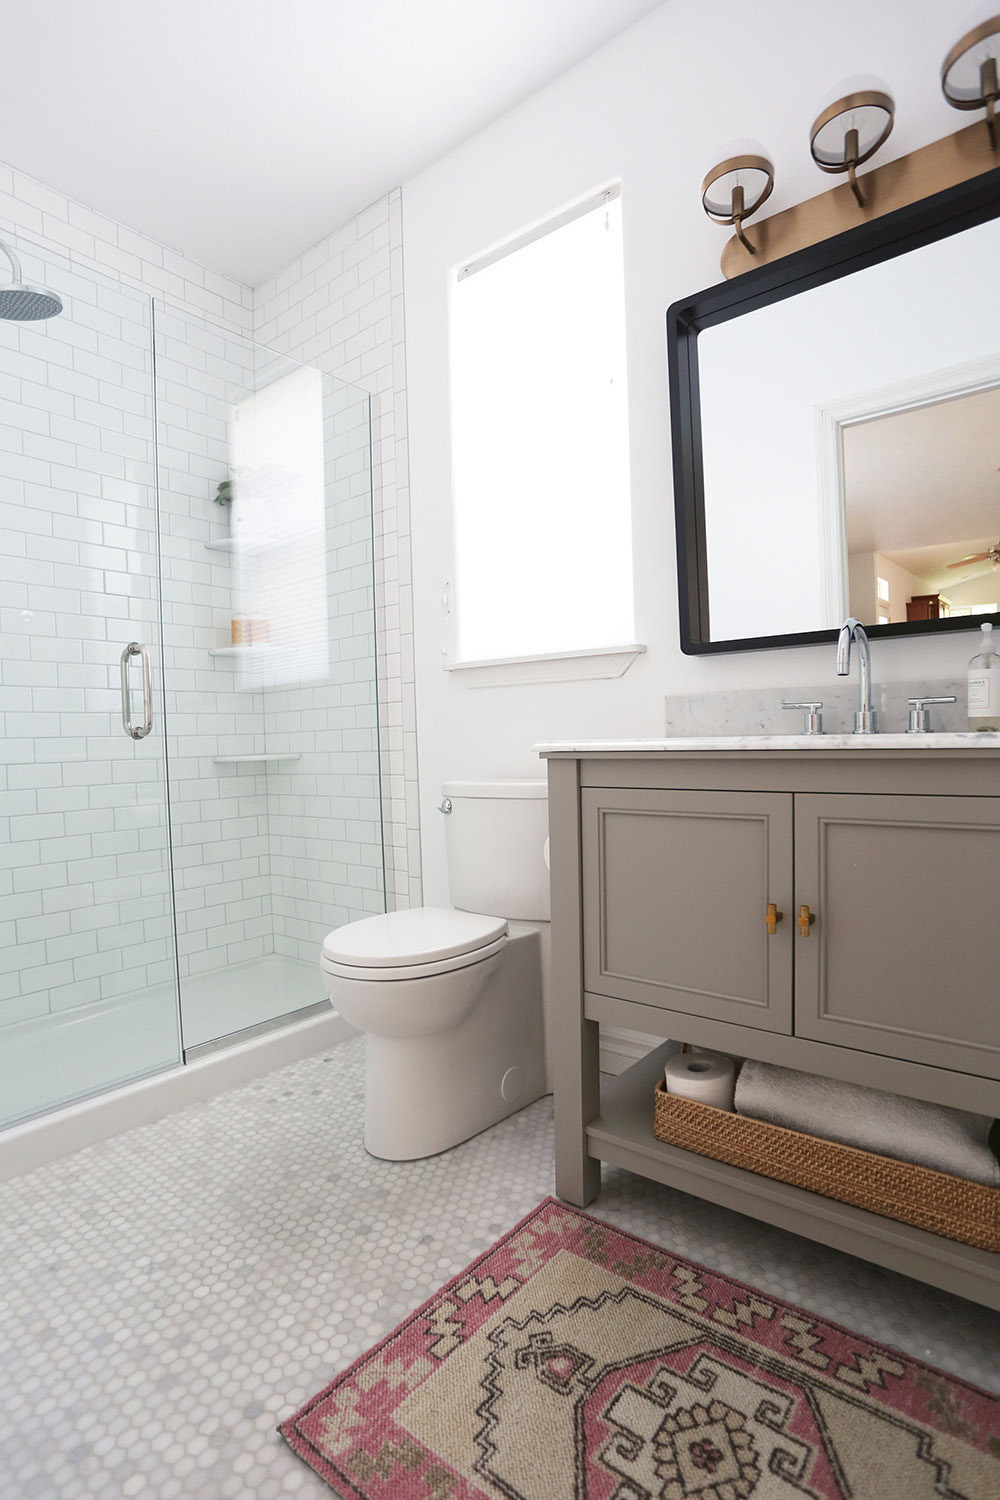 An updated bathroom with a tiled shower, tiled floor, and new gray vanity.